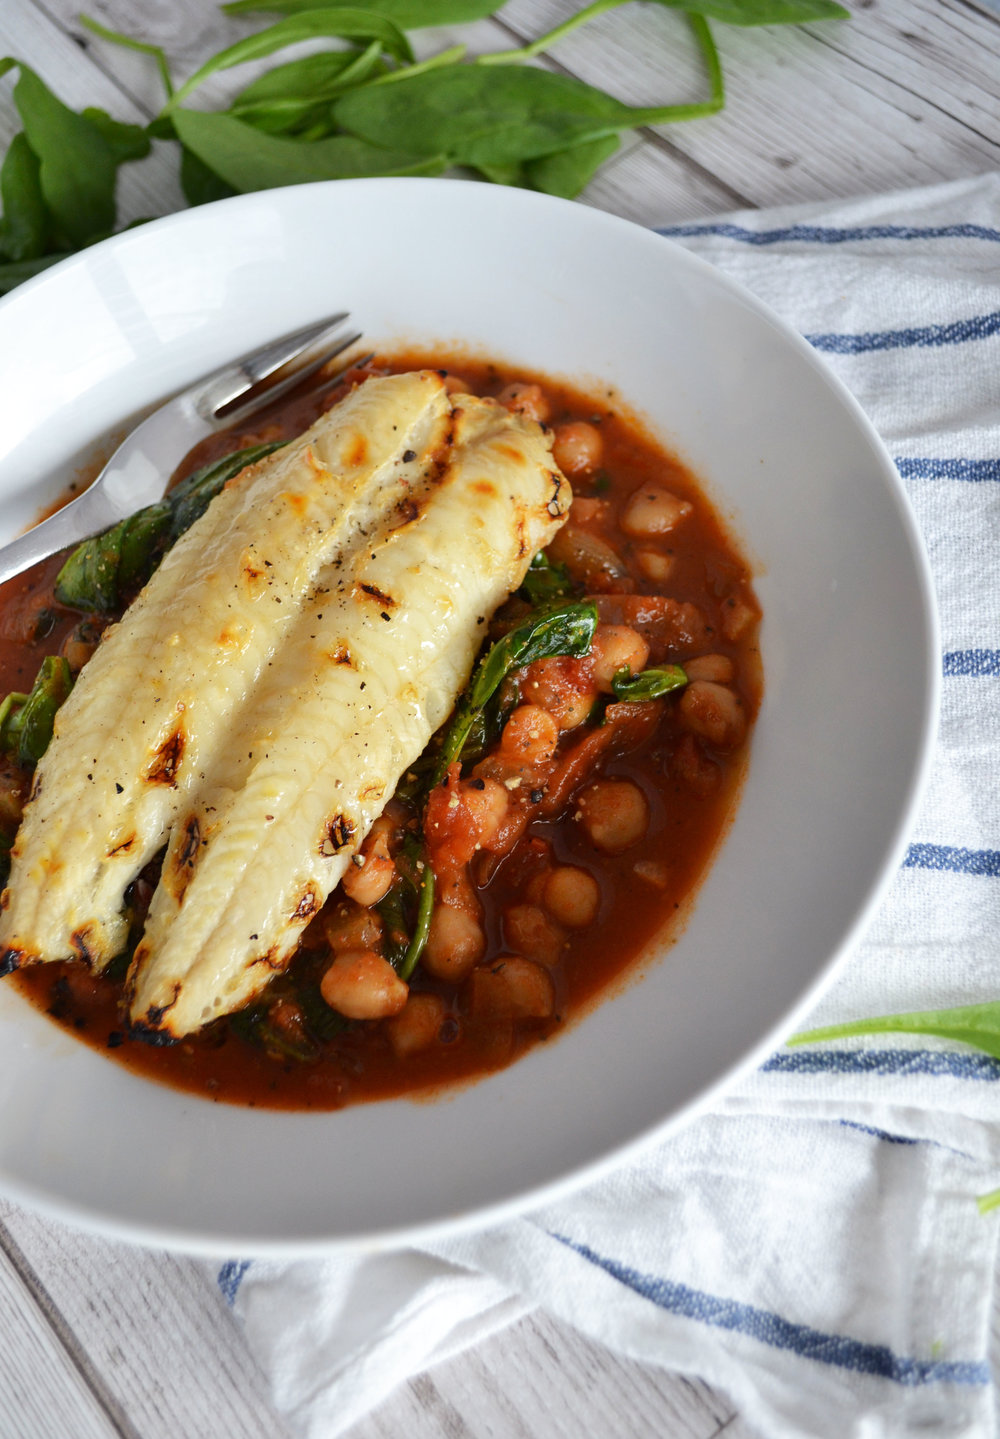 Haddock and chickpea stew | The Flourishing Pantry